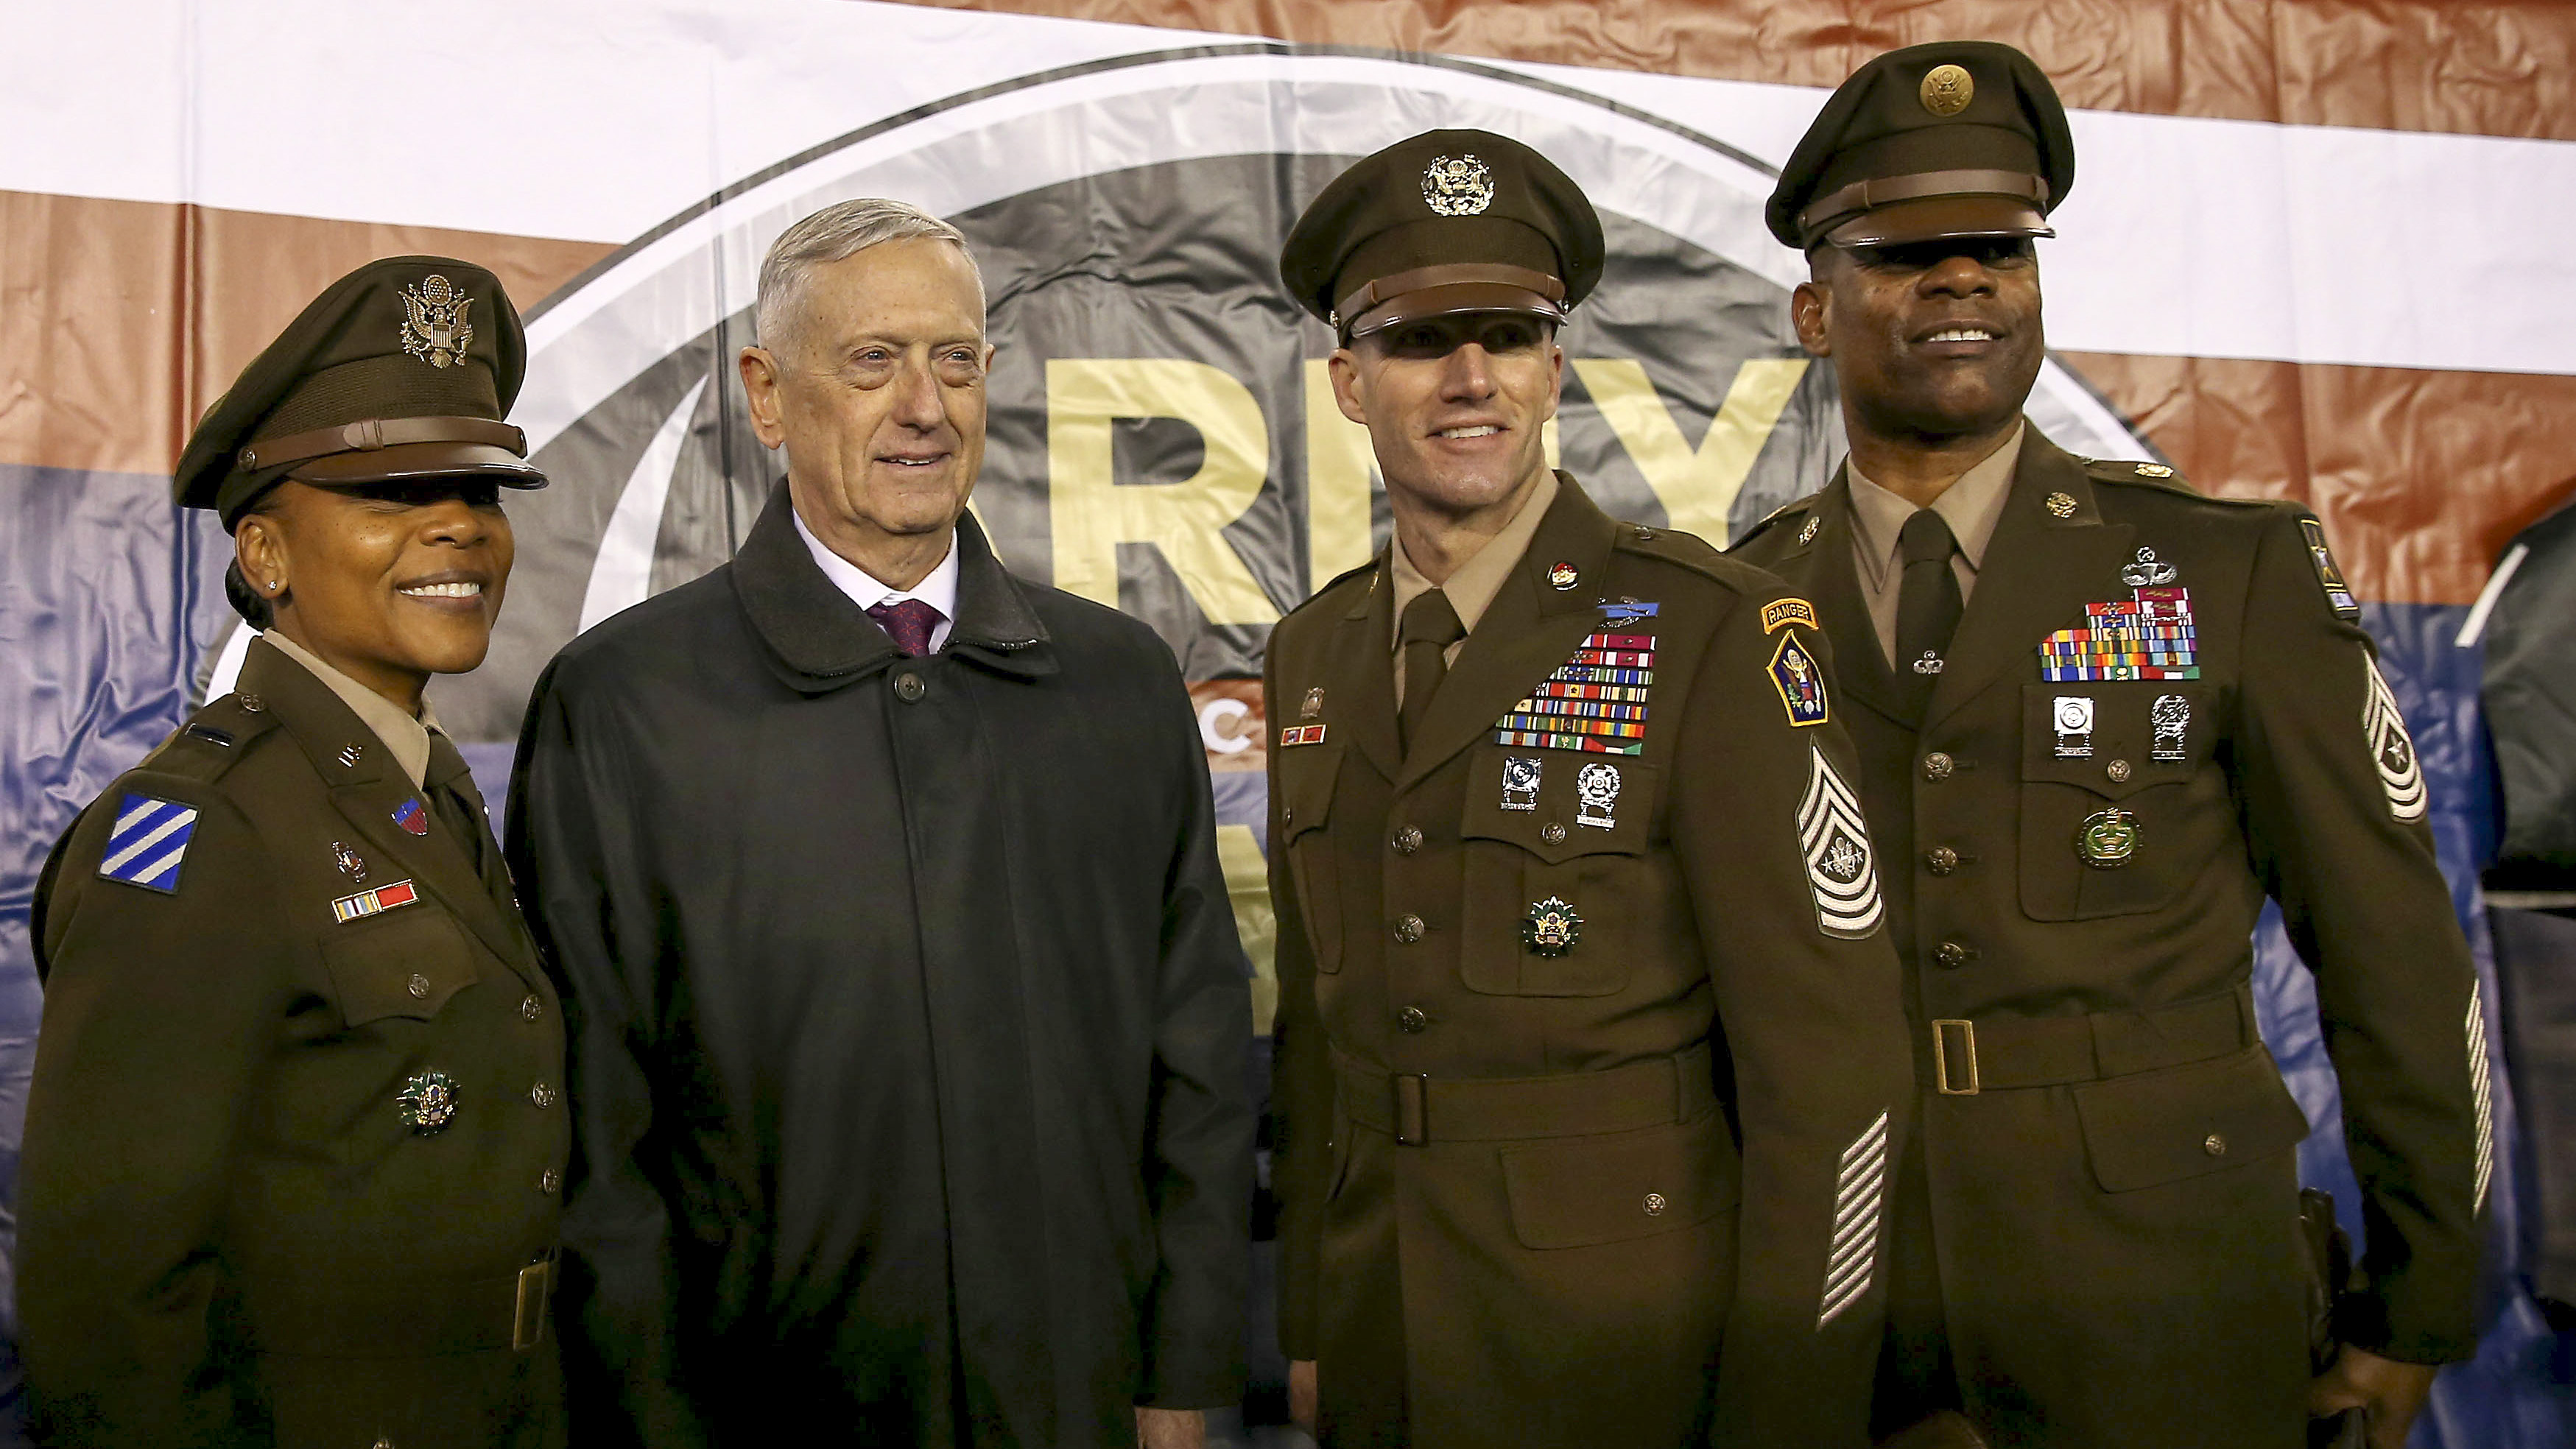 James N. Mattis. Secretary of Defense, poses for a picture during the game between the Army Black Knights and the Navy Midshipmen at Lincoln Financial Field on December 08, 2018 in Philadelphia, Pennsylvania.The Army Black Knights defeated the Navy Midshipmen 17-10. (Photo by Elsa/Getty Images)